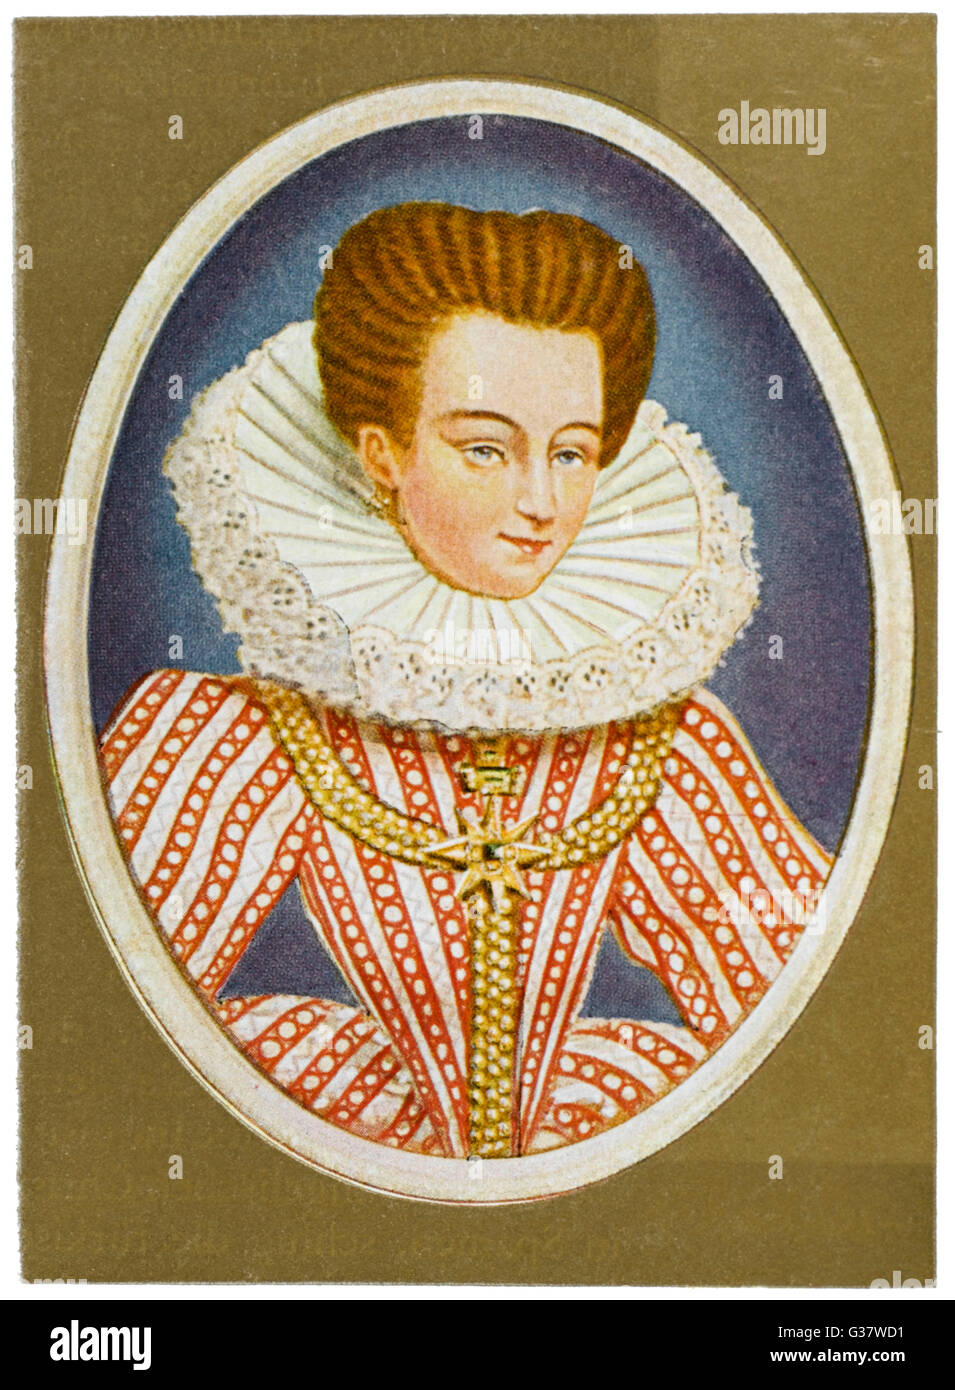 GABRIELLE ESTREES  Mistress of Henri IV.         Date: 1573 - 1599 - Stock Image